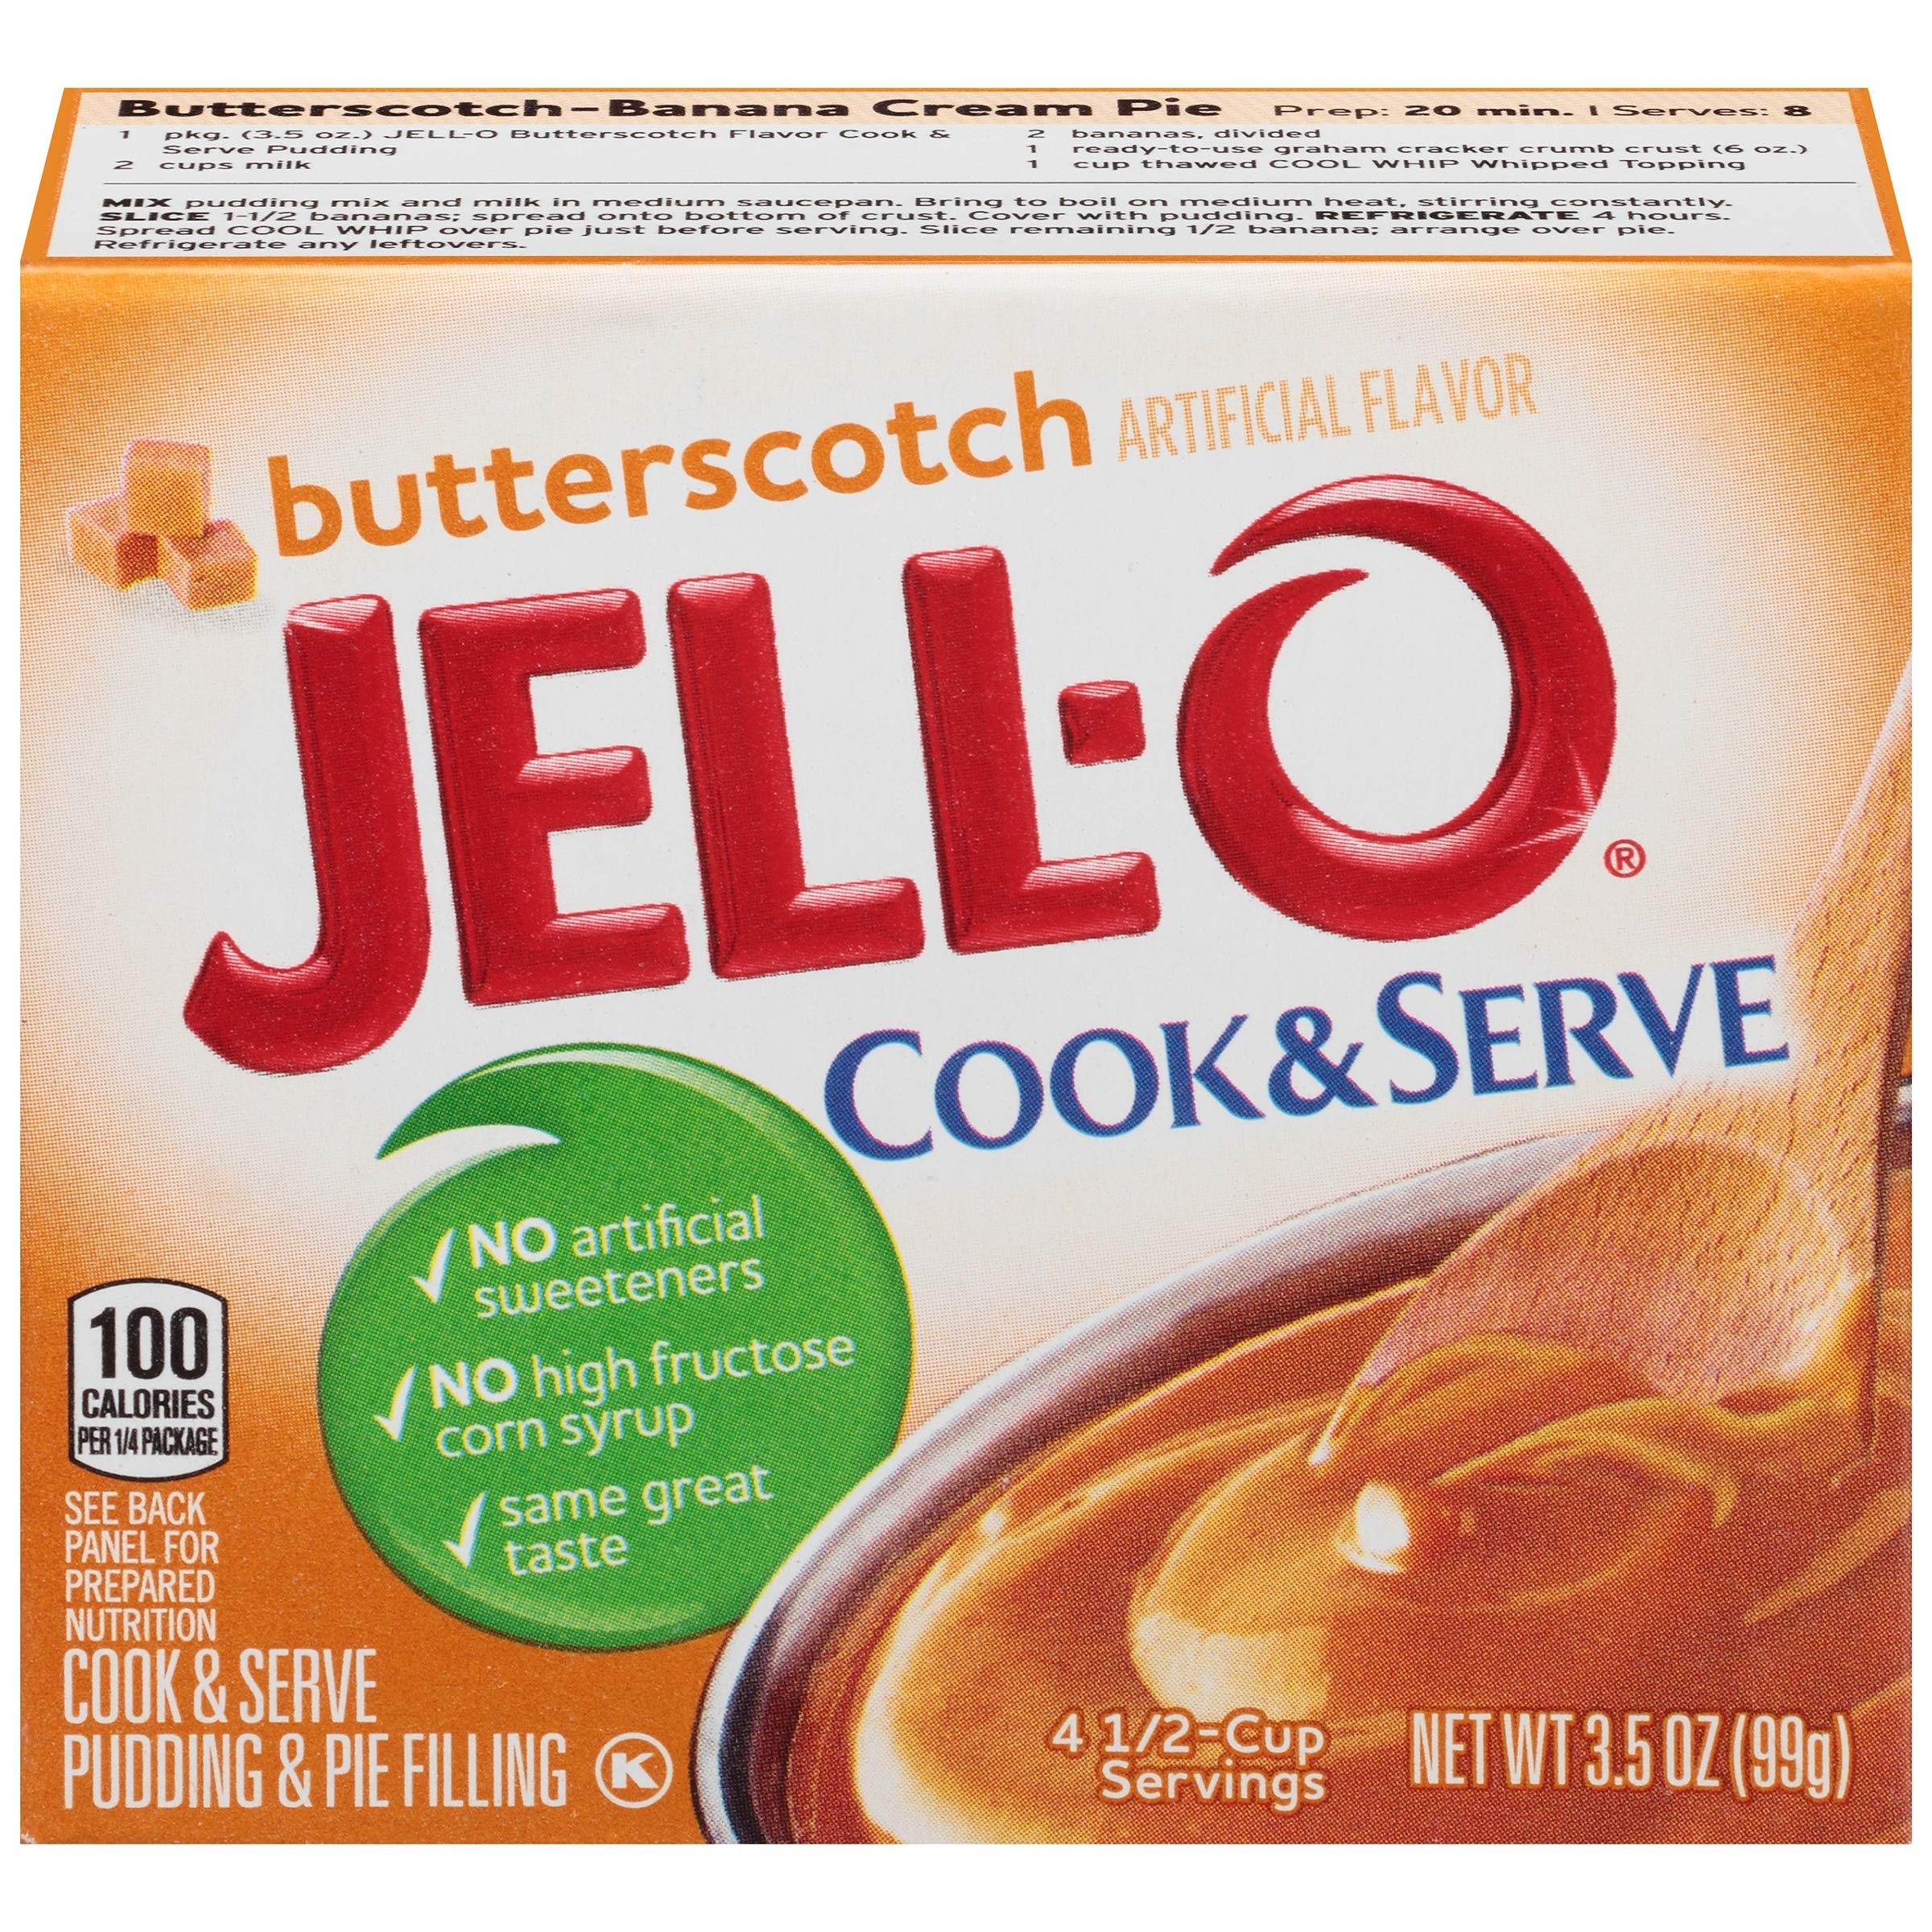 JELL-O Butterscotch Cook & Serve Pudding & Pie Filling Mix (3.5 oz Boxes, Pack of 6)